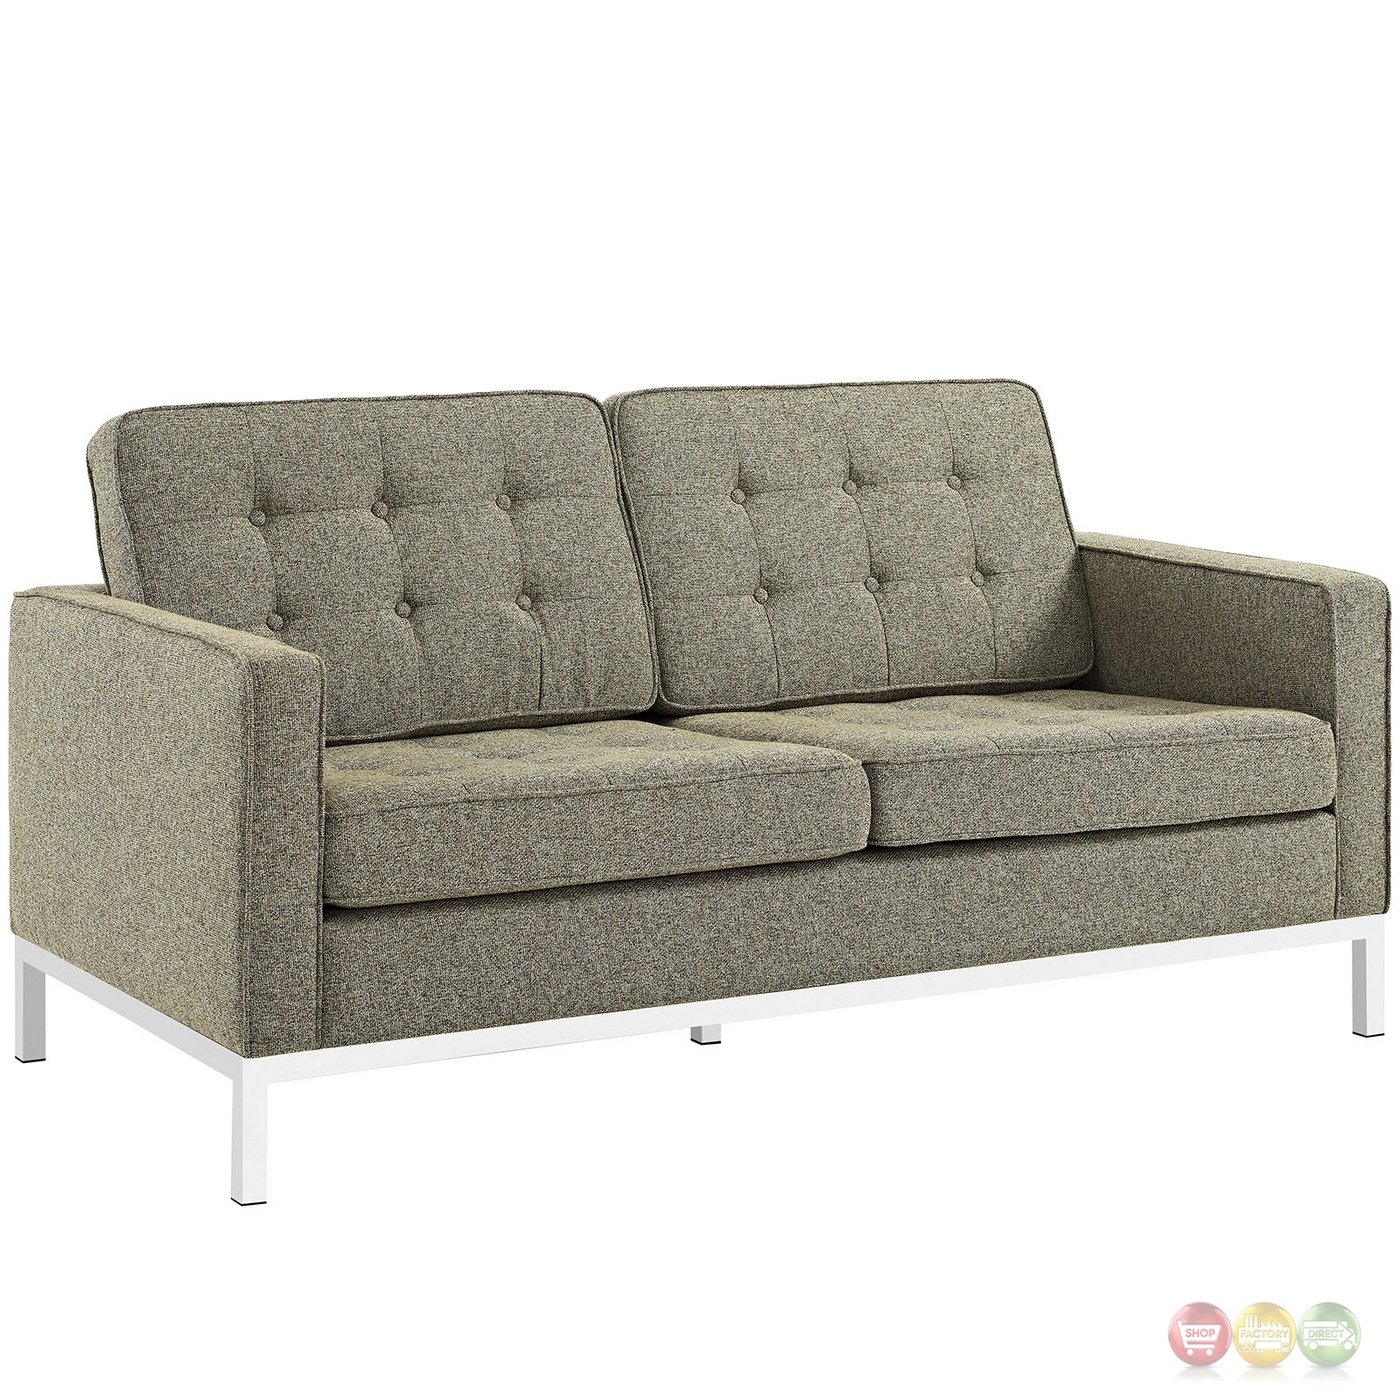 Loft modern 3 pc button tufted upholstered sofa set w steel frame oatmeal Steel frame sofa